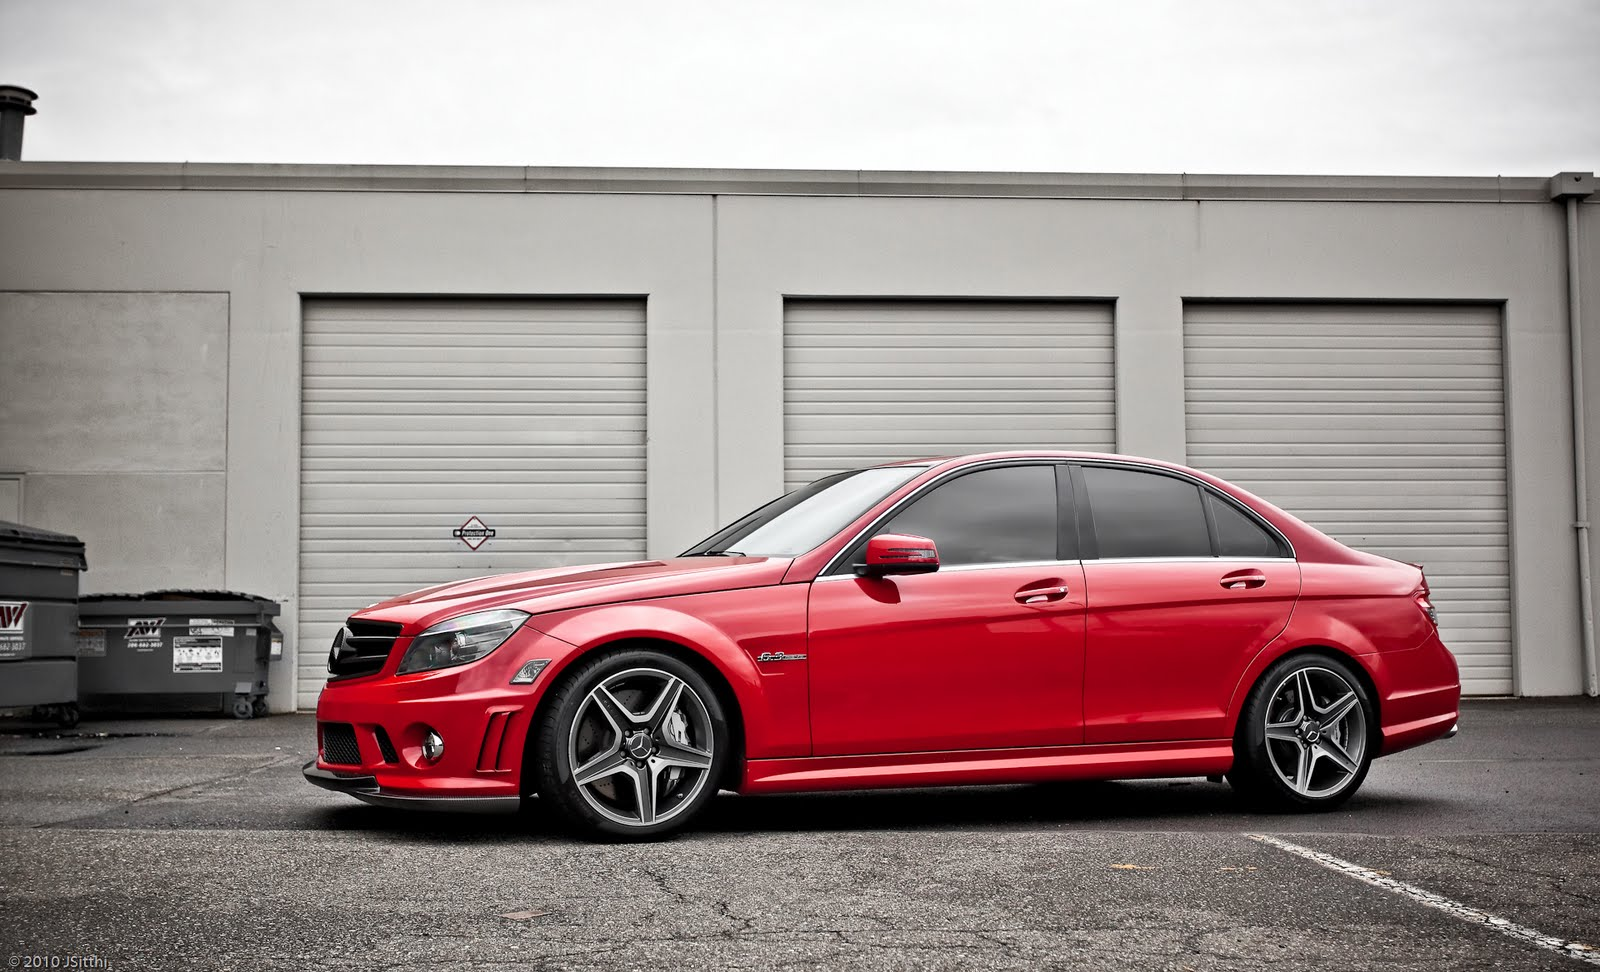 sadiss anyarrrrrrrrrrrrrrrrrrrr mercedes benz c63 amg w204 red. Black Bedroom Furniture Sets. Home Design Ideas